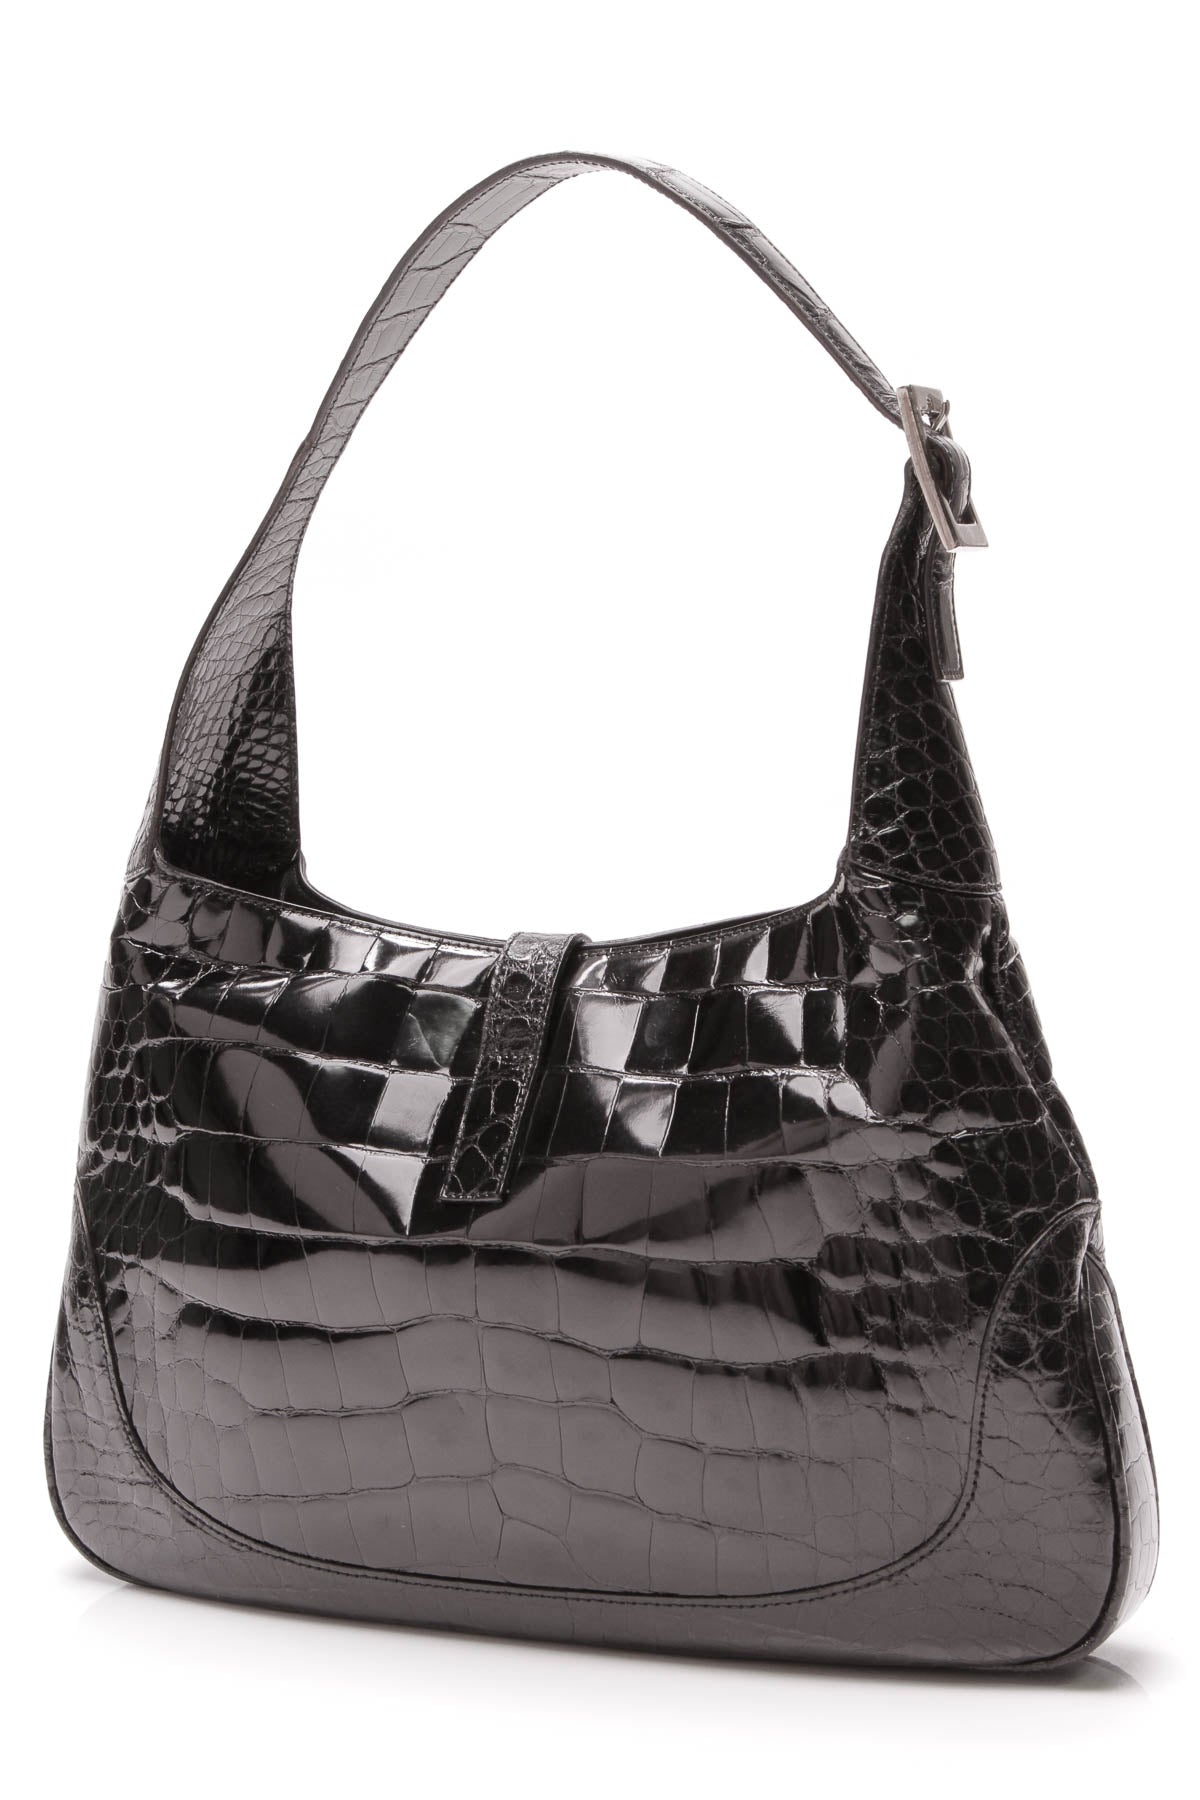 a13aa338b5b24c Gucci Crocodile Jackie Bag - Black – Couture USA